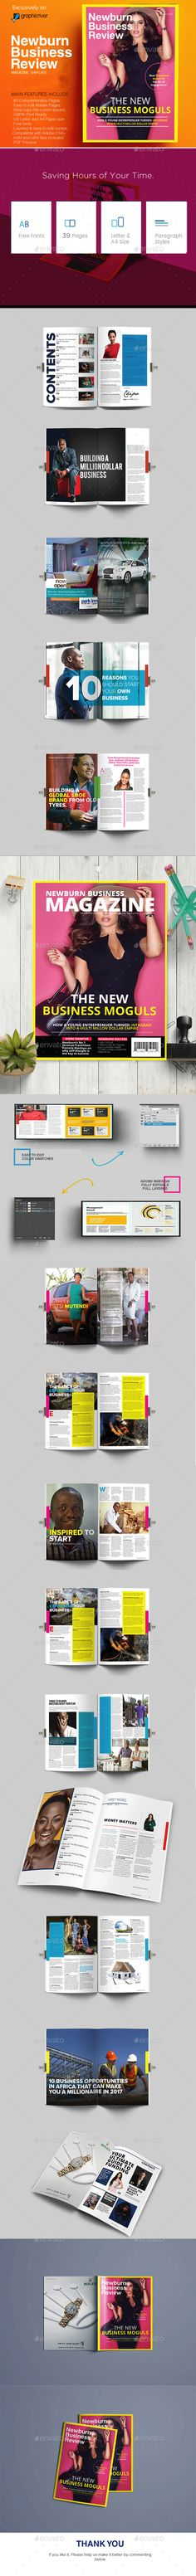 Newburn Marketing \/ Technology Magazine InDesign Template - business review template